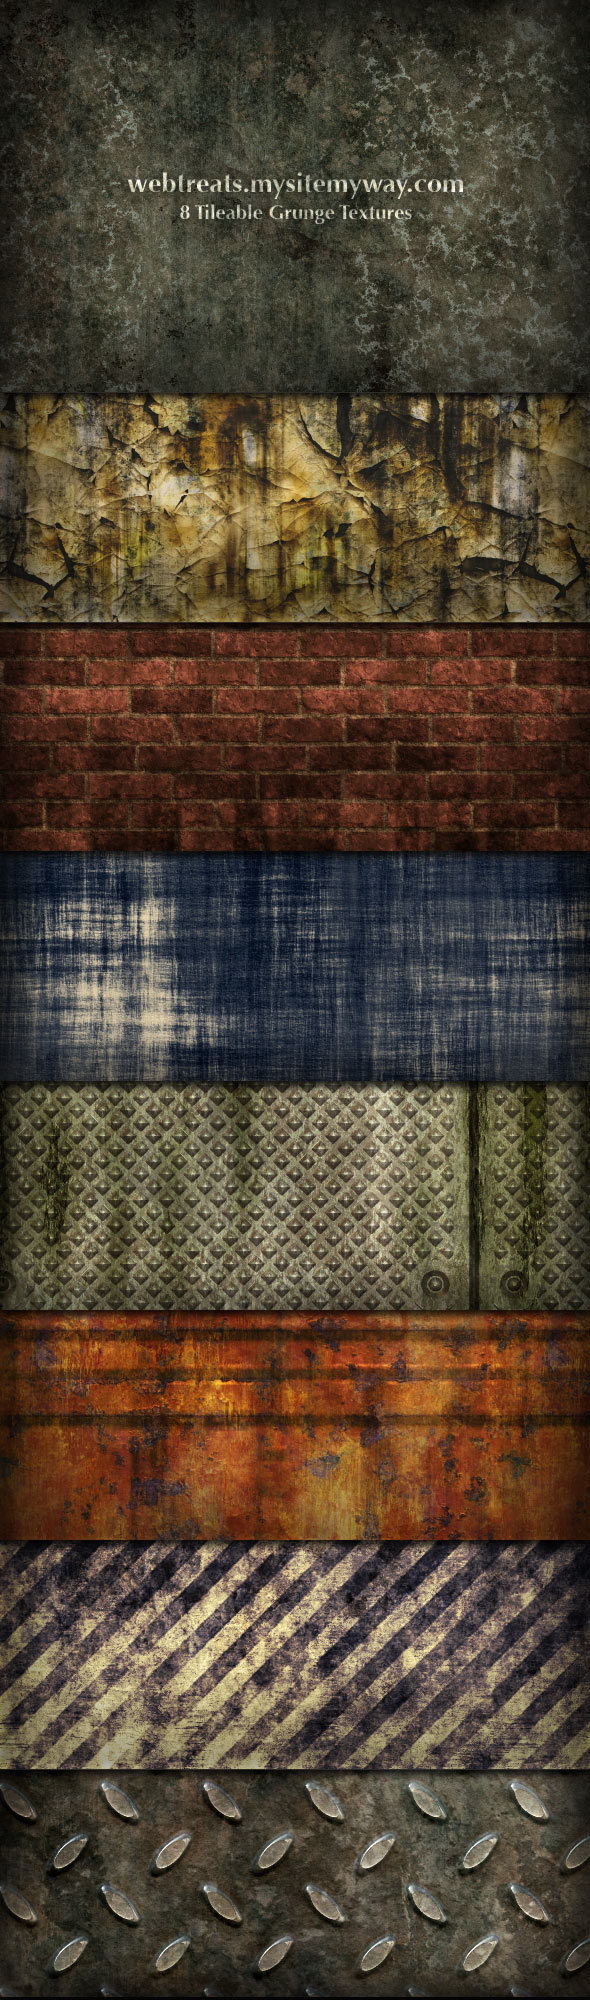 8 가지 타일러블 그런지(tileable grunge) 포토샵 PSD 텍스쳐 - 8 Free Tileable Grunge Photoshop Textures